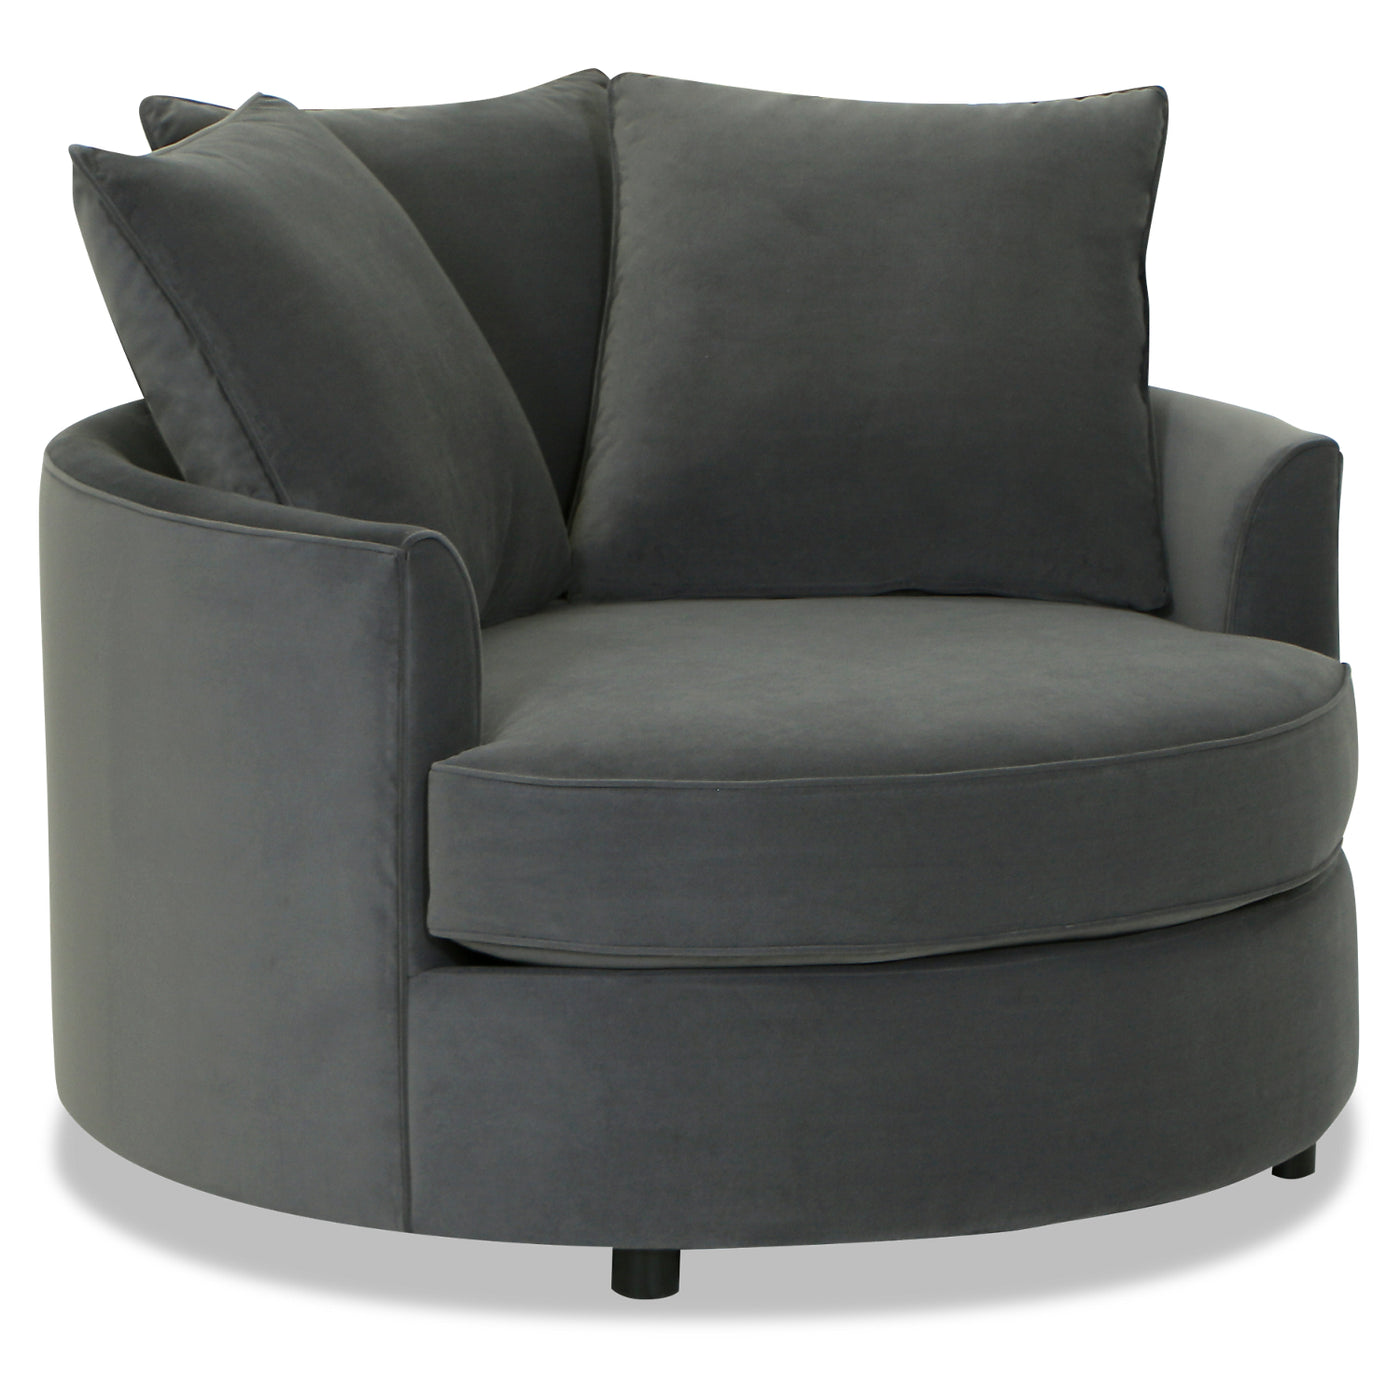 Incredible Designed2B Velvet Nesting Accent Chair Kira Grey Onthecornerstone Fun Painted Chair Ideas Images Onthecornerstoneorg